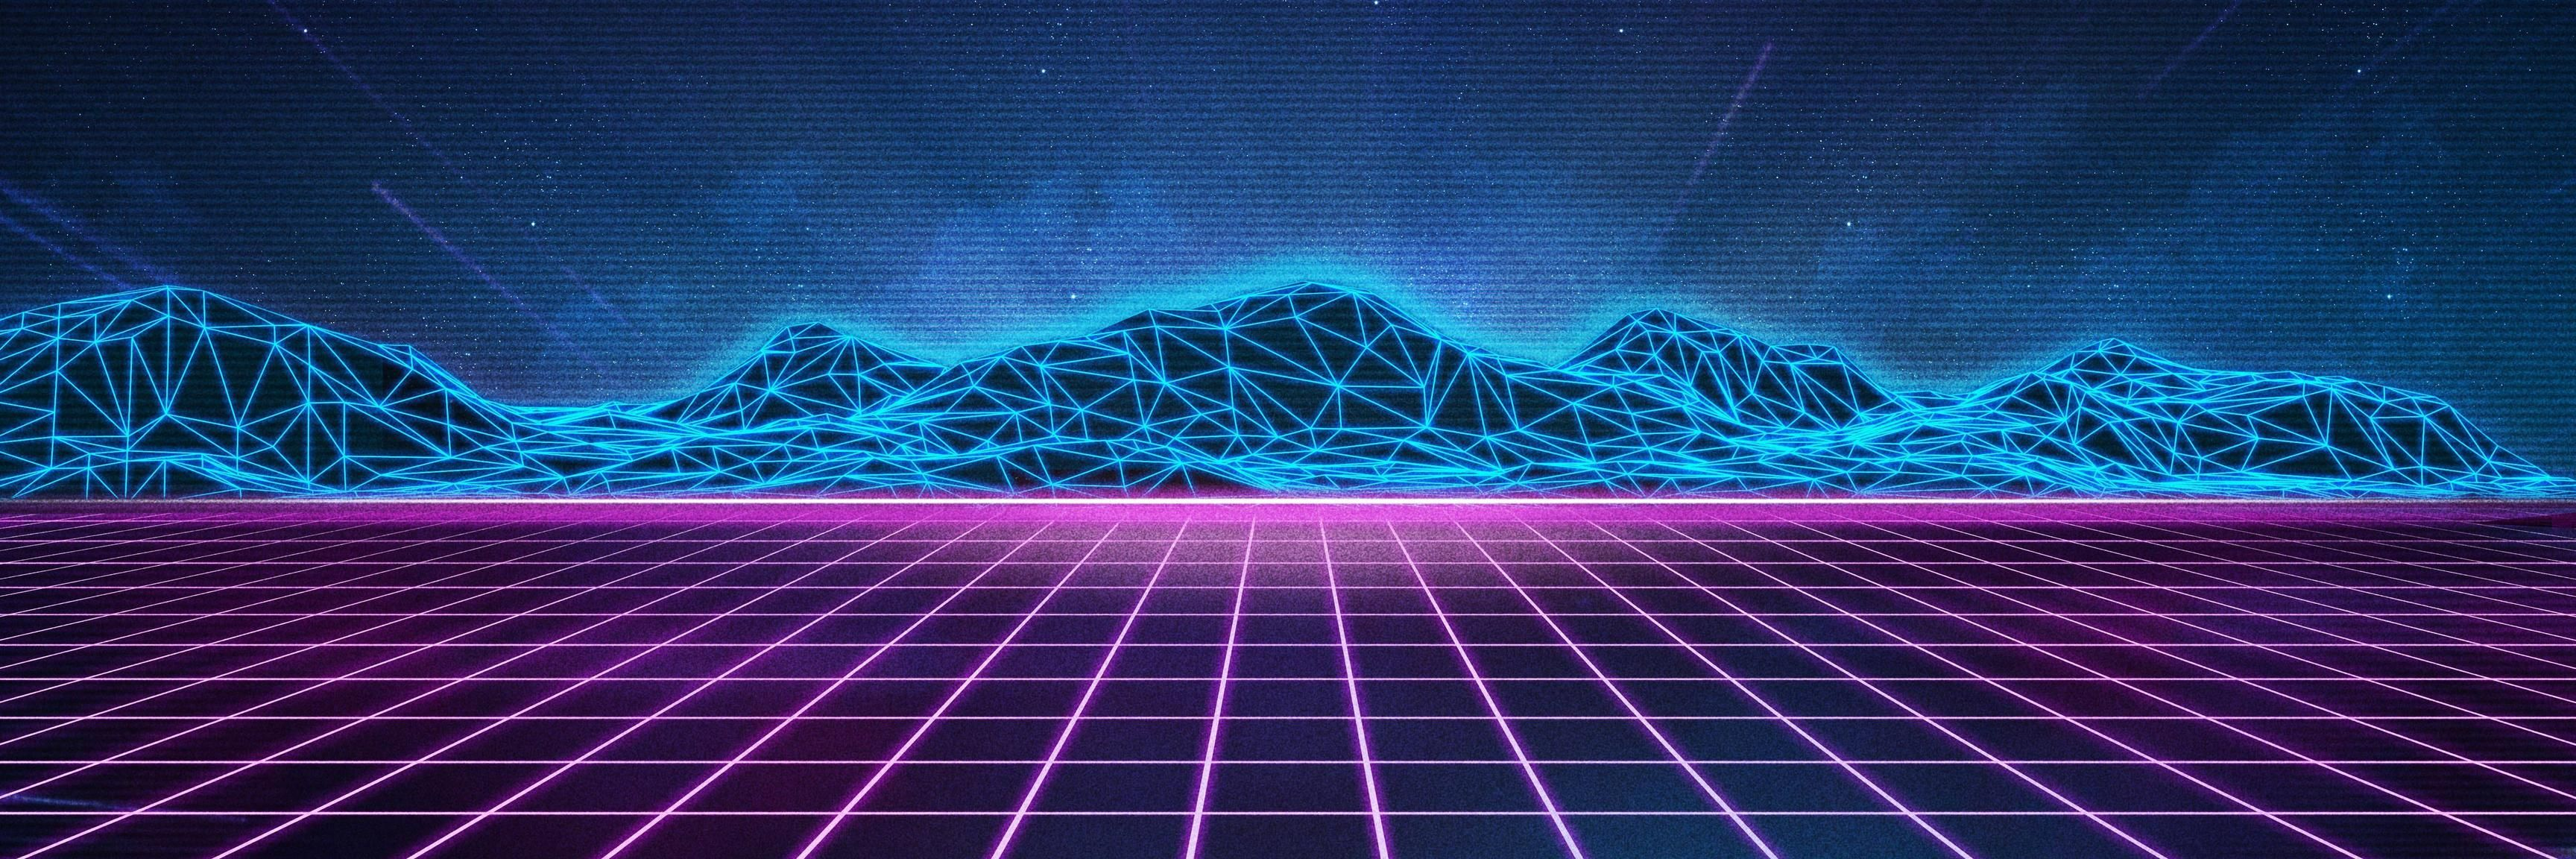 80s 4k Wallpaper Pack In 2020 Vaporwave Wallpaper Neon